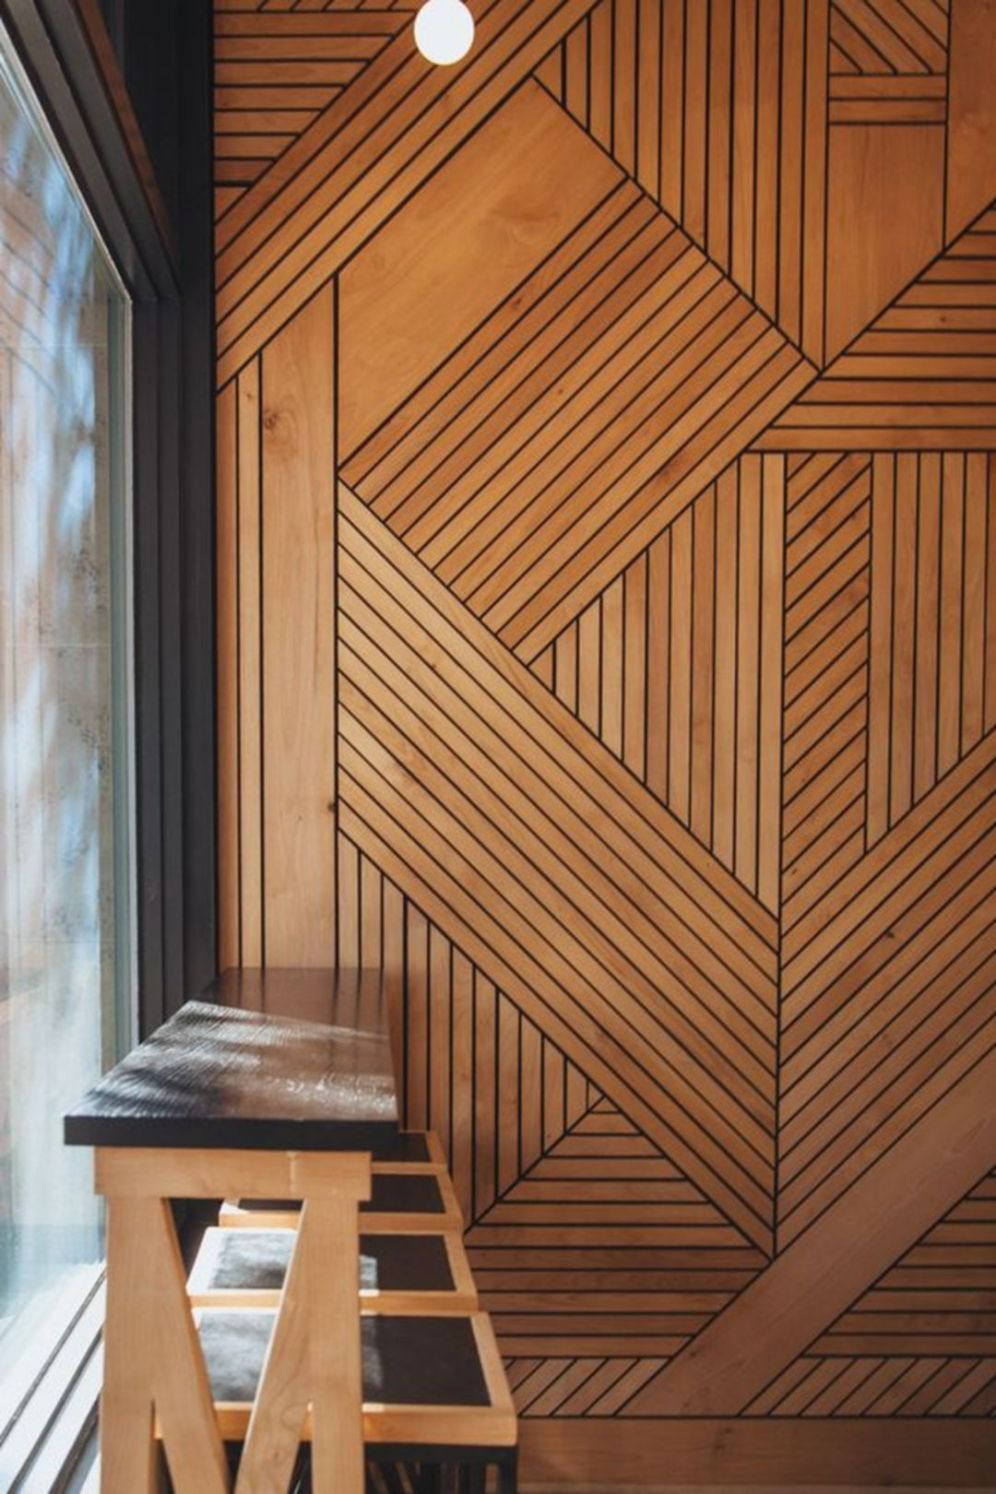 Interior Wood Paneling: 25+ Amazing Wood Wall Covering Ideas For Amazing Home